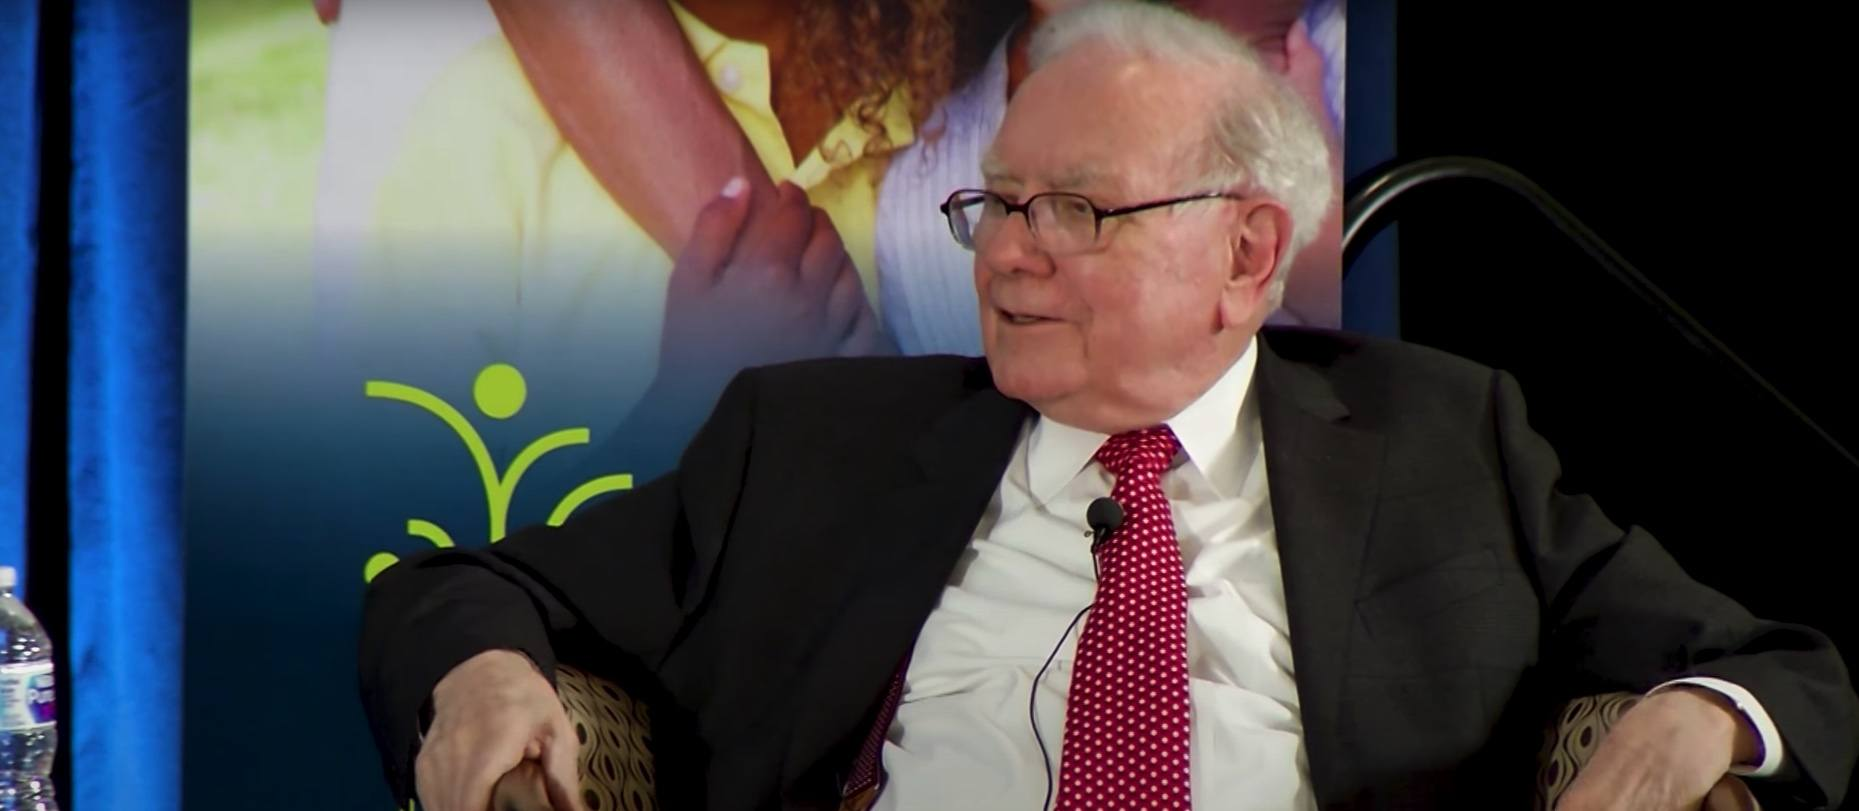 Bitcoin Hater Warren Buffett Invests $500 Million in Digital Bank Offering Crypto Products